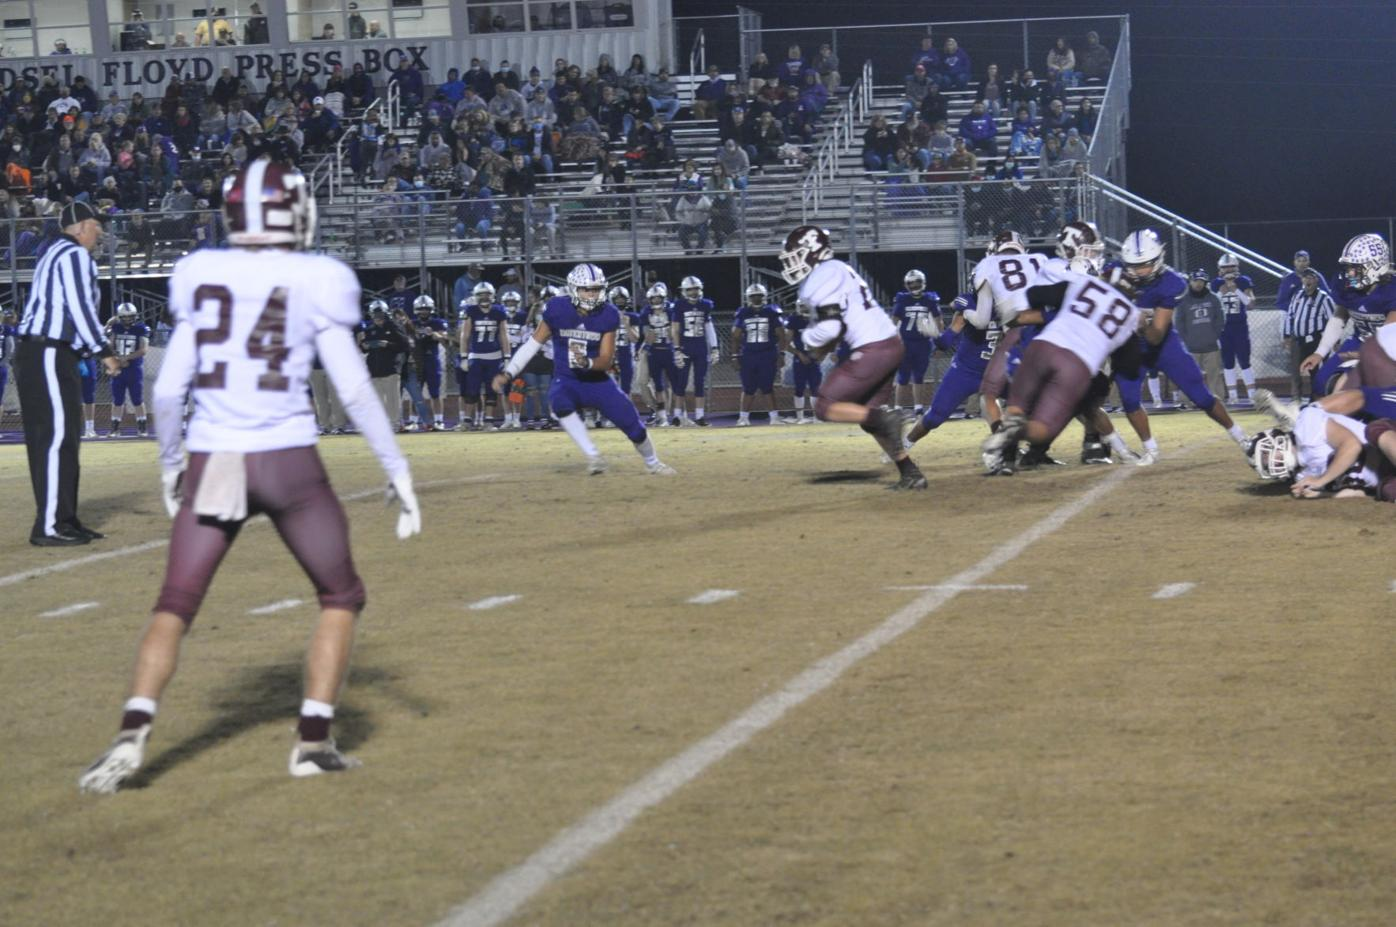 Tellico Plains playoff appearances shows growth, long road ahead